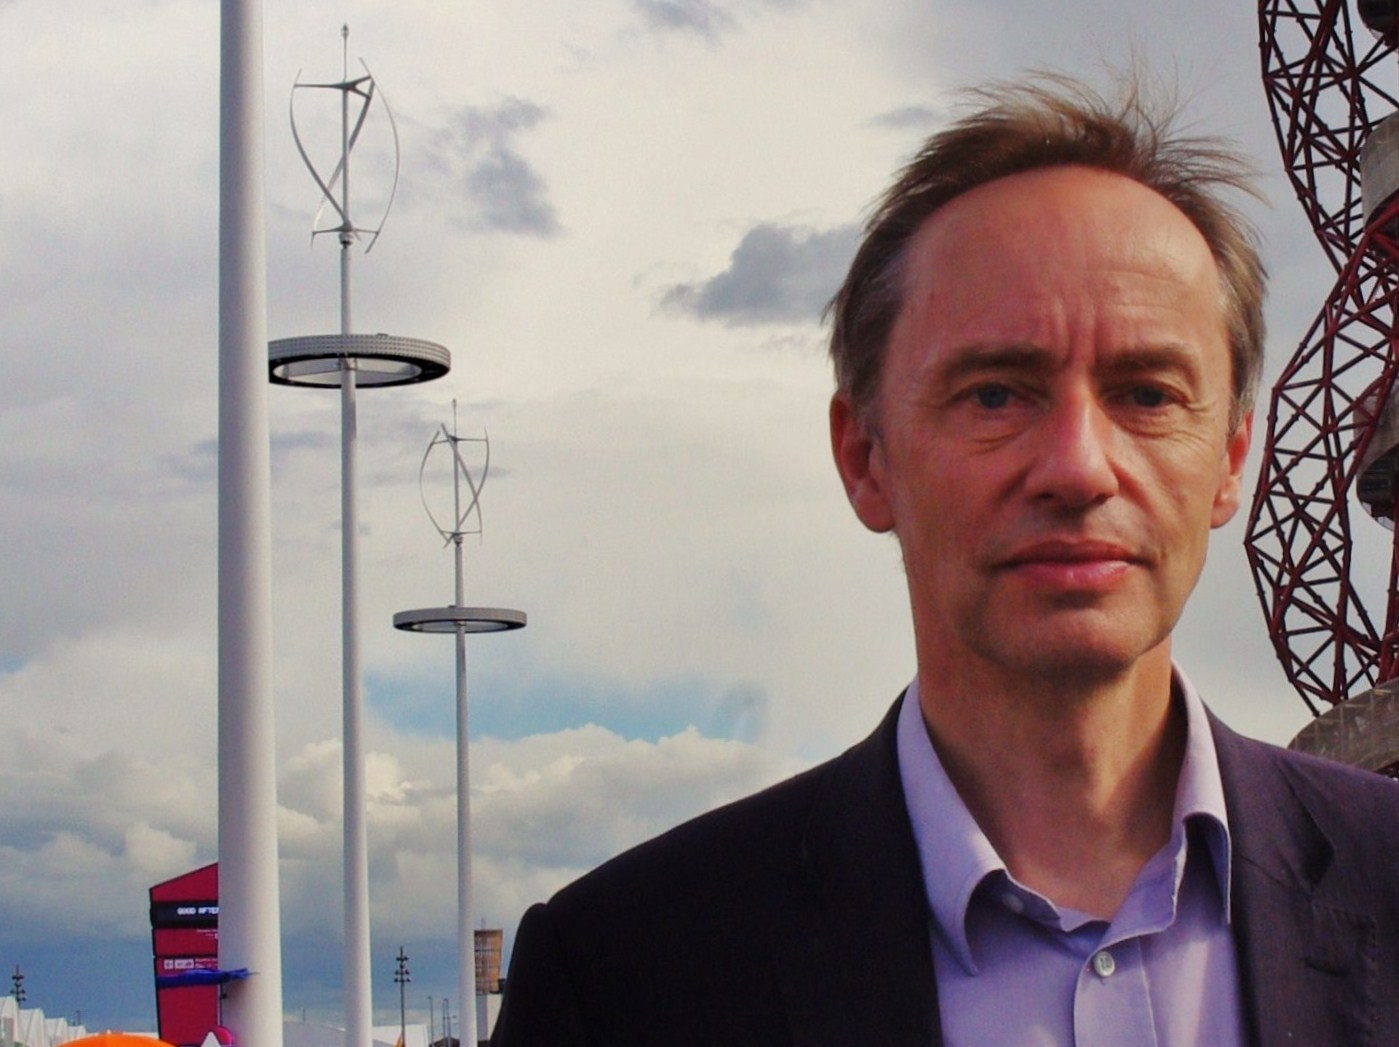 Mark Sutton Vane visits the Olympic Park during the London 2012 Games. The Memory Masts, visible in the background, will remain as a permanent reminder of the events.